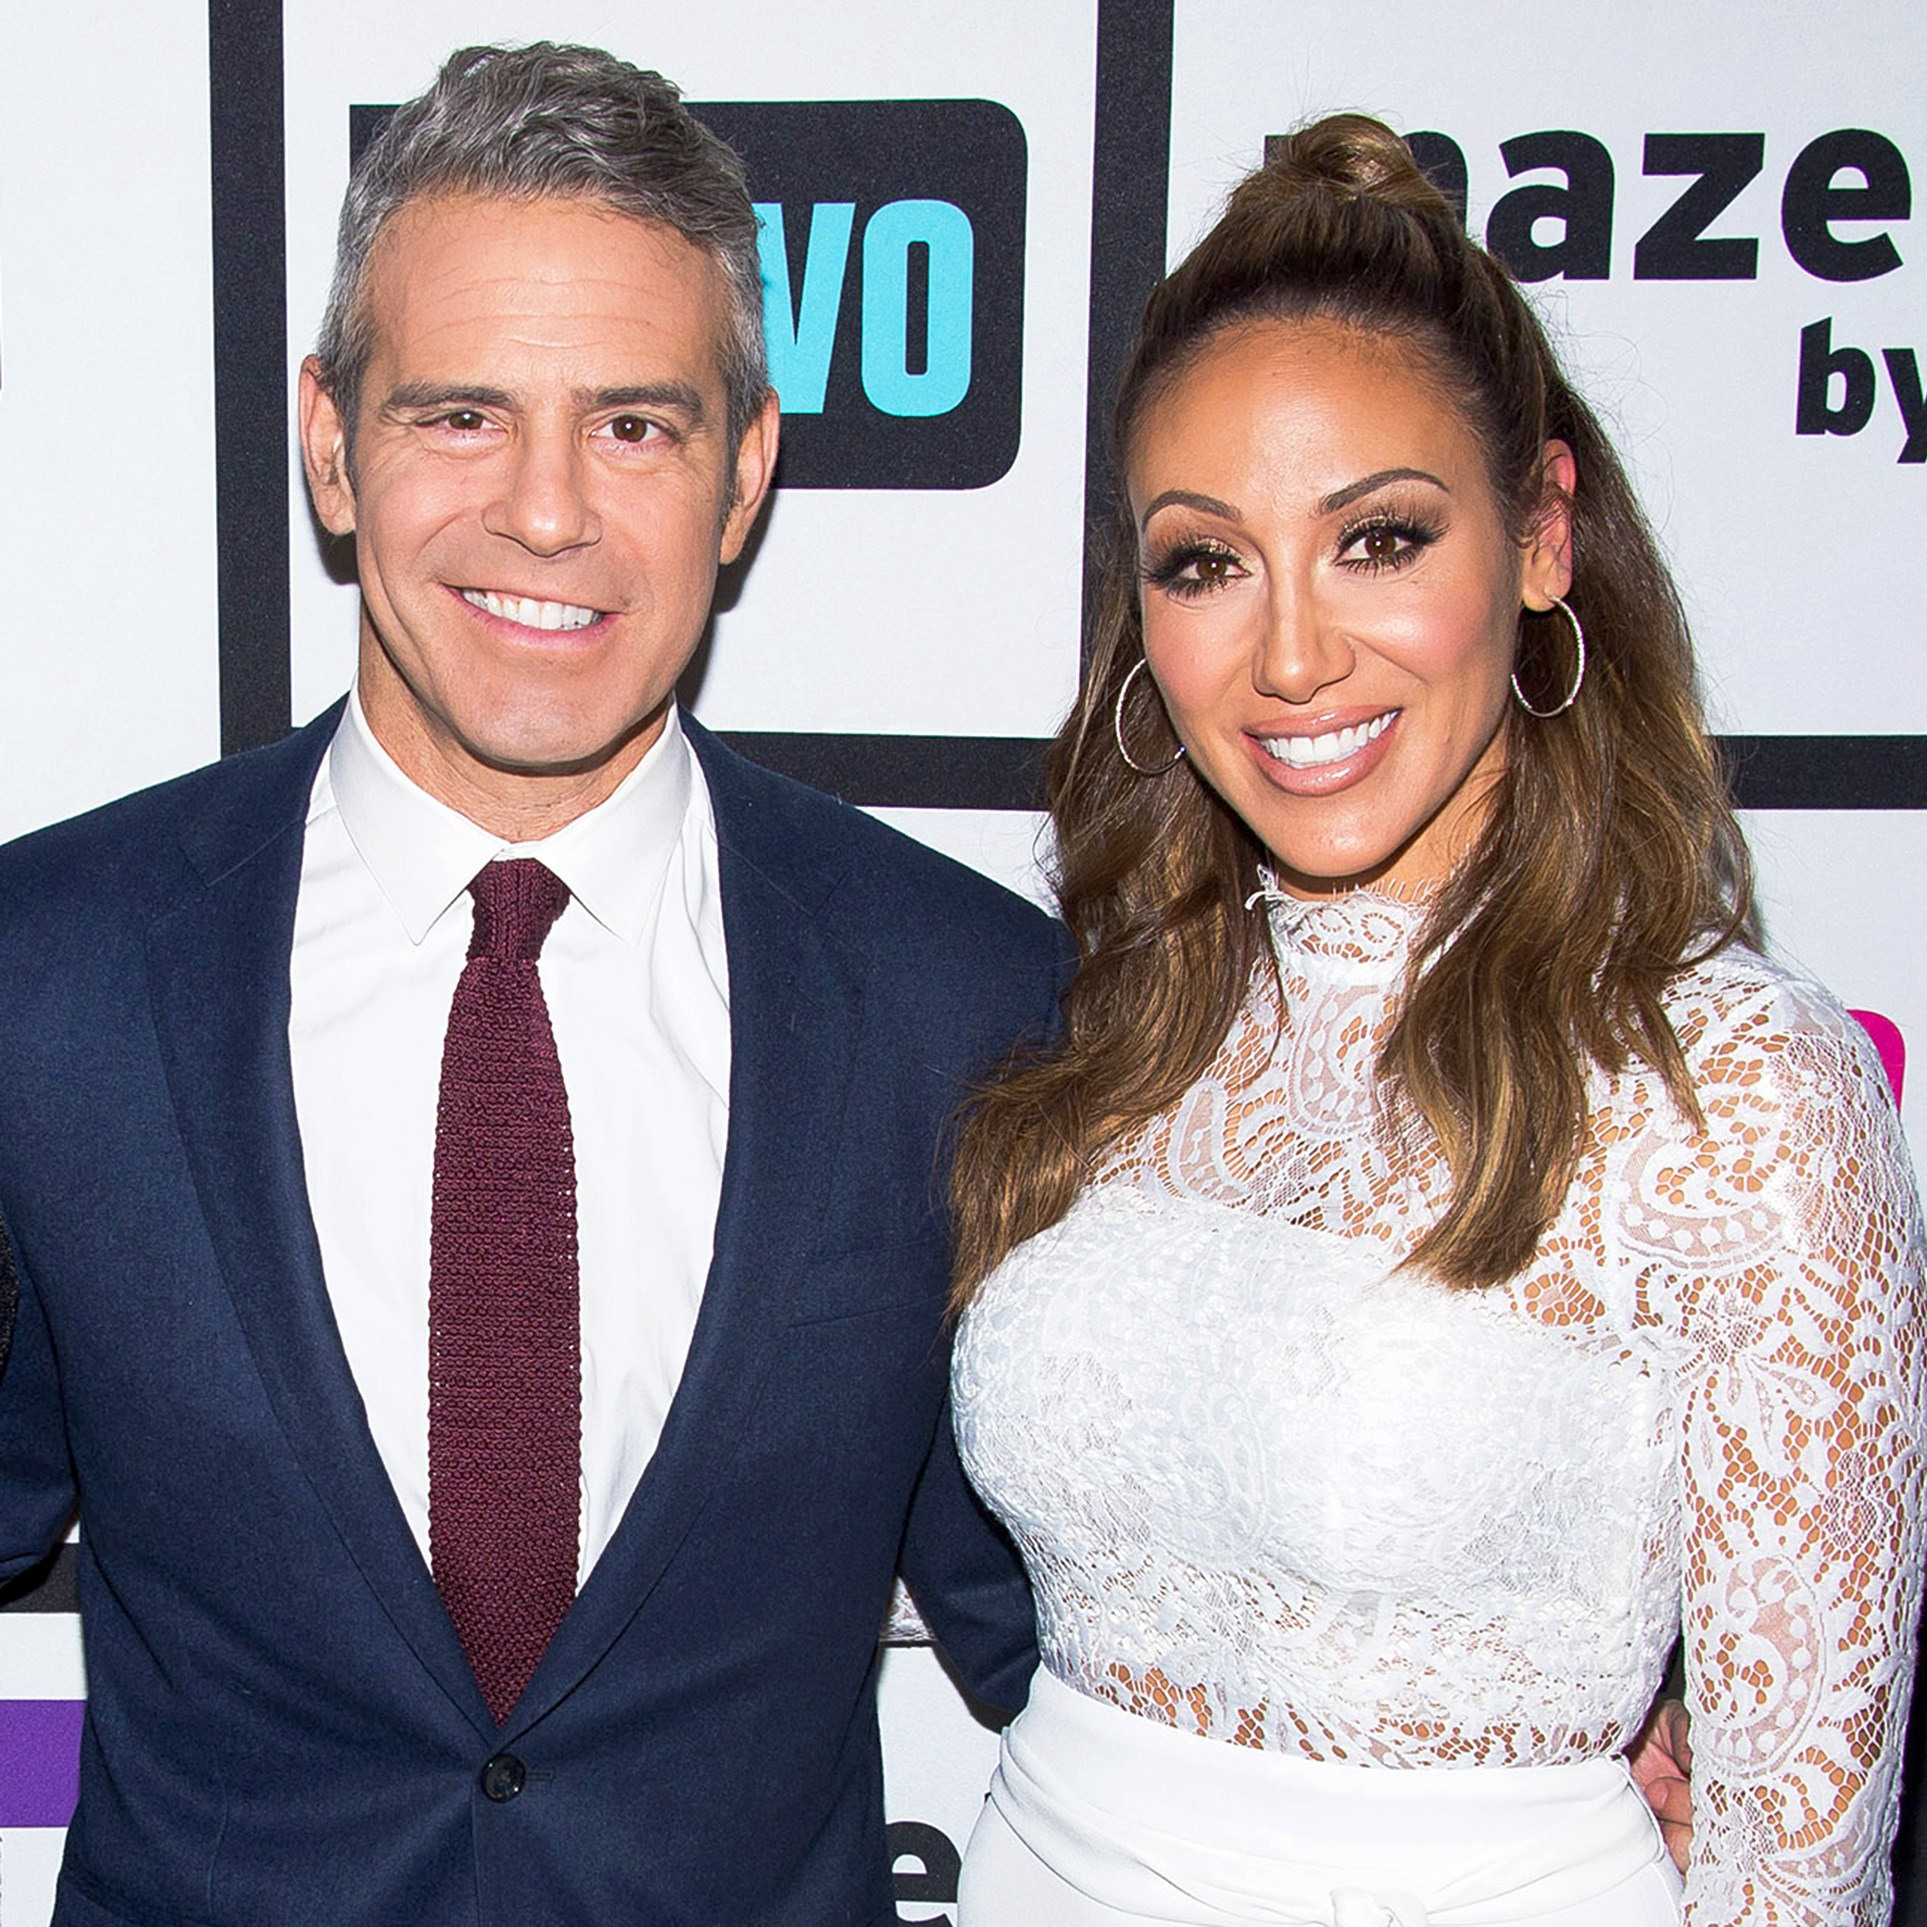 Andy Cohen and Melissa Gorga on 'Watch What Happens Live'